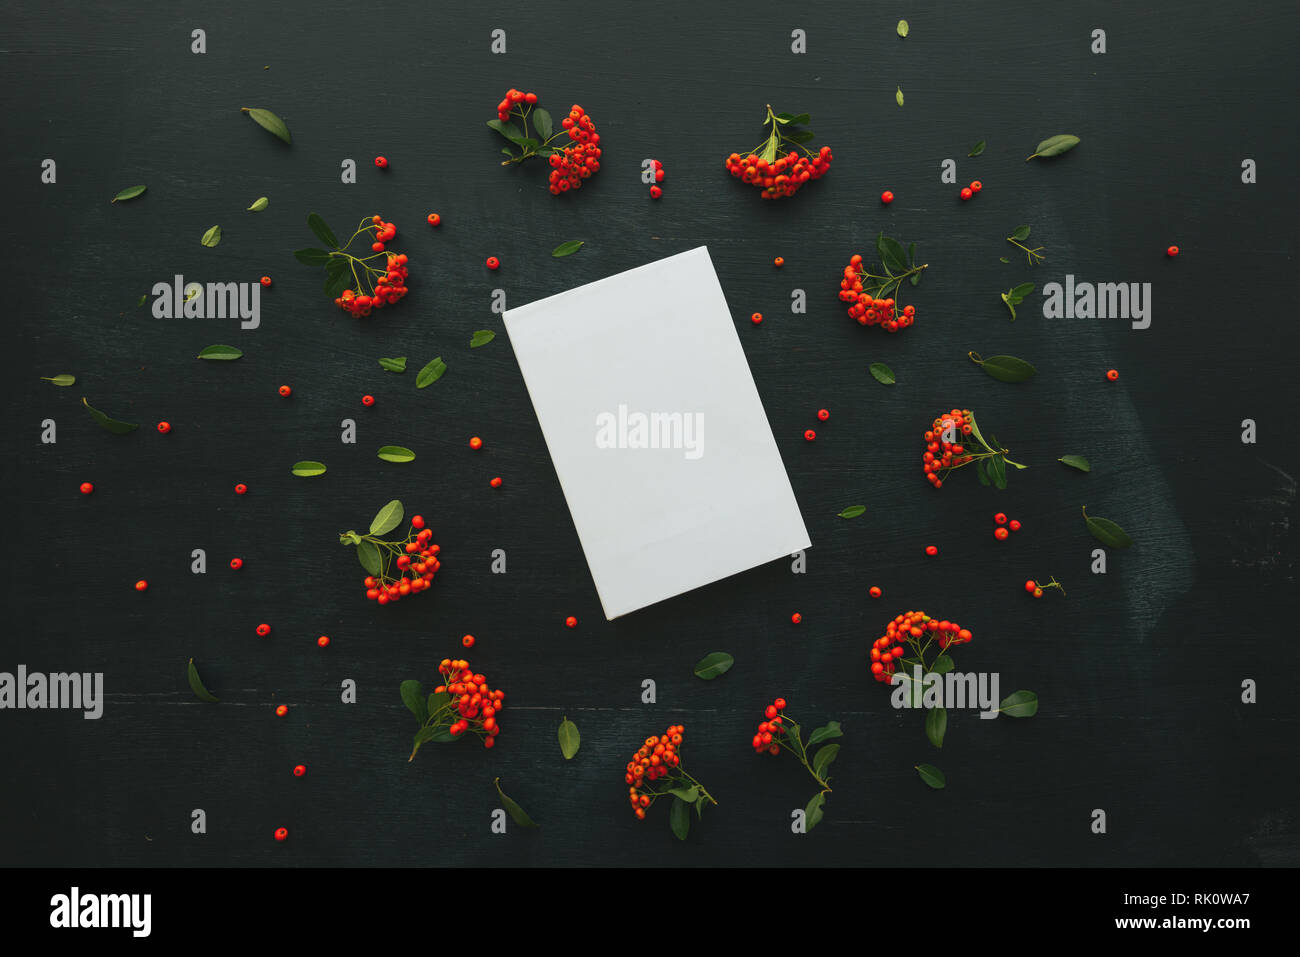 Hardcover book cover design mock up top view overhead shot with floral arrangement, retro toned flat lay minimalism - Stock Image